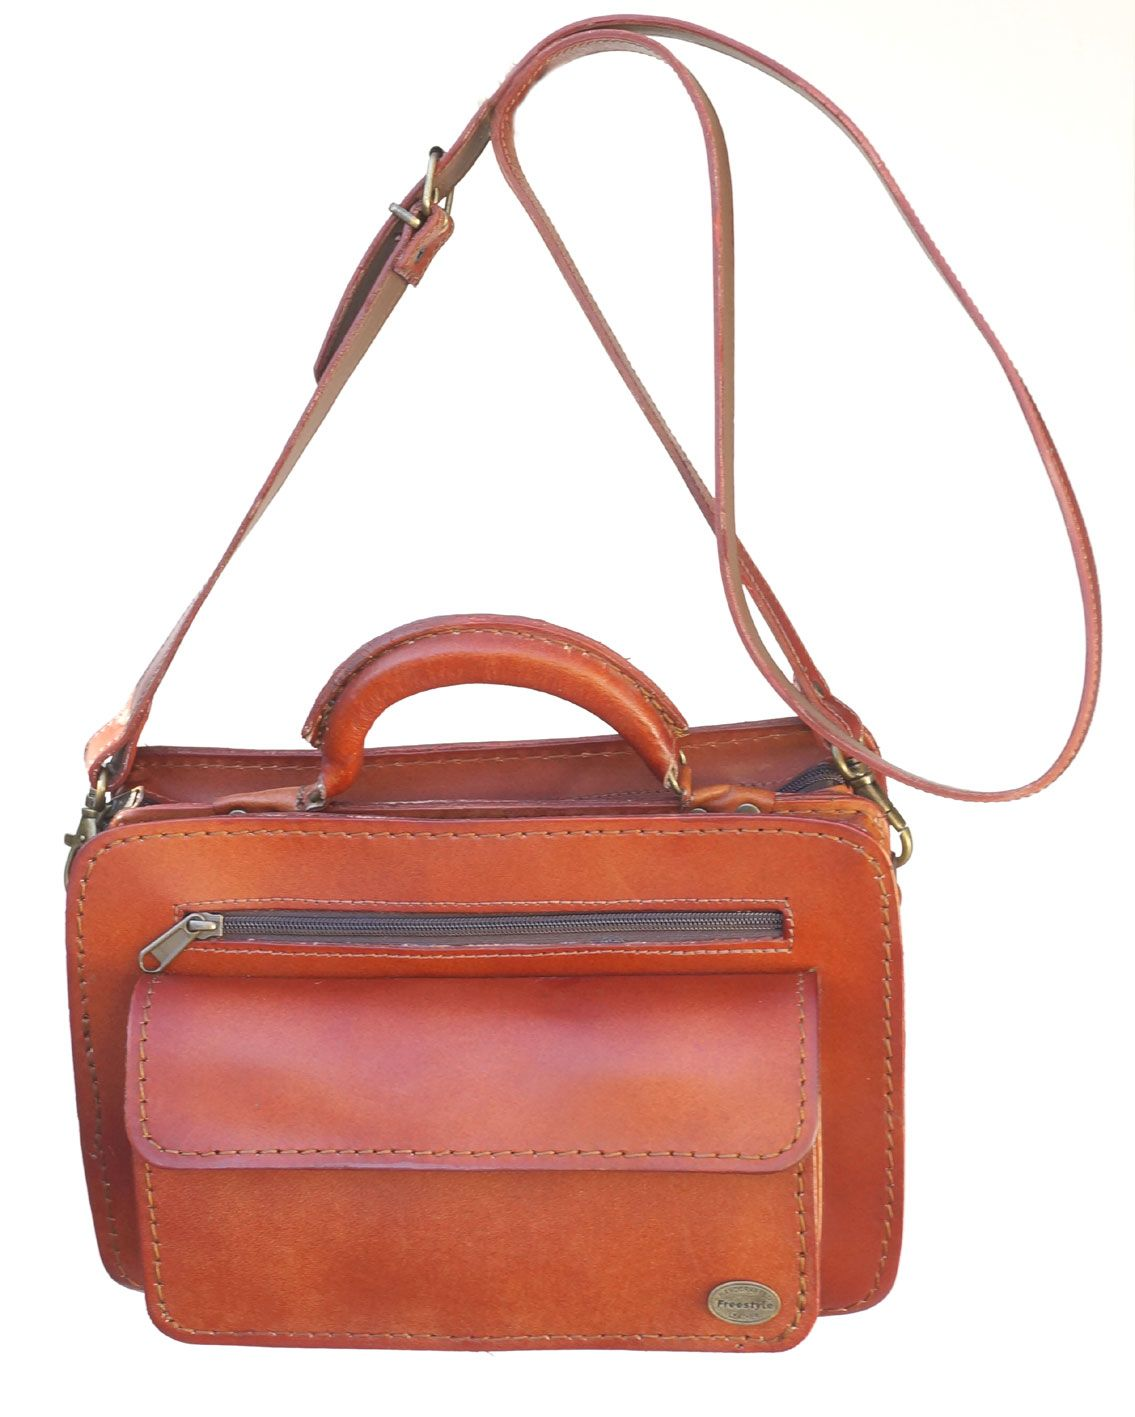 79b2d20dc295 Freestyle Marcia II (Kudu Tan) Genuine Leather Bag. R 1 499. Handcrafted in  South Africa. Width  30cm Height  19.5 cm Gussets  7 cm